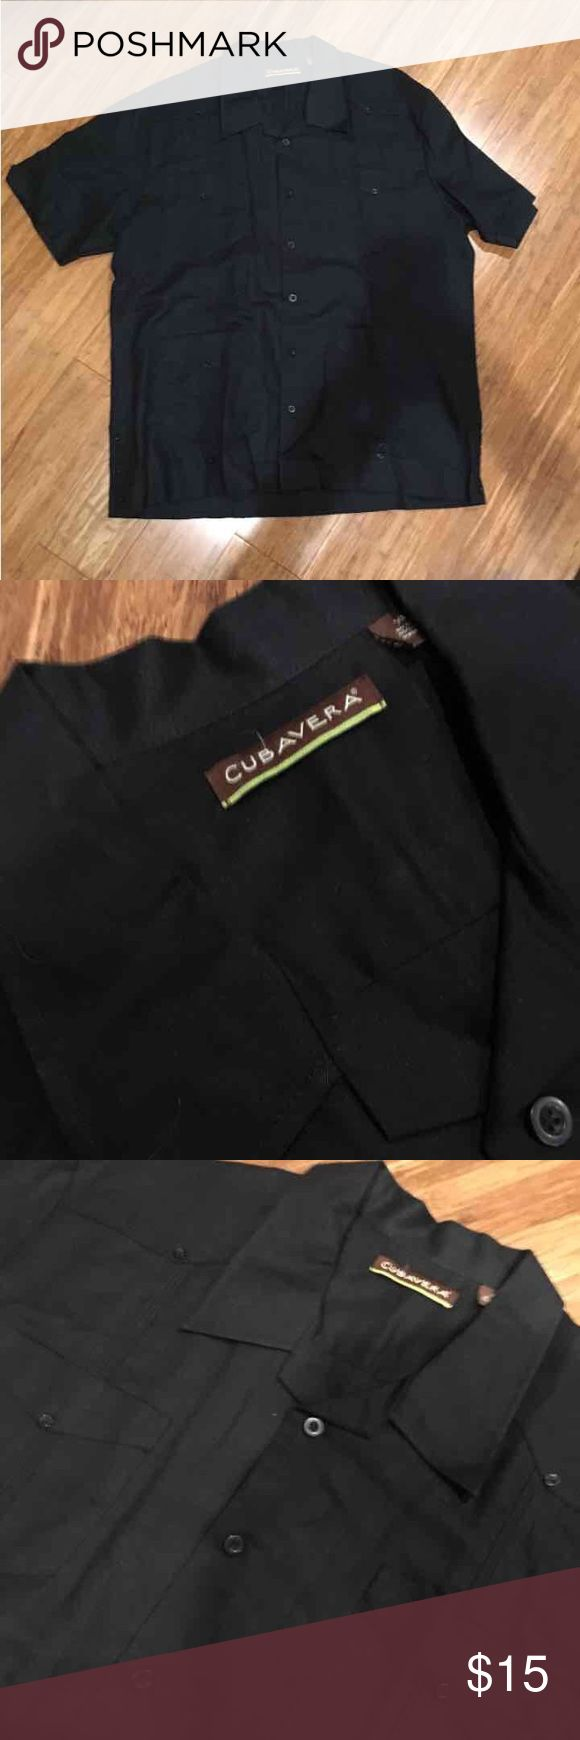 Short sleeve black button down shirt Short sleeve black button down shirt with several pockets. In excellent condition only worn once. Cubavera Shirts Casual Button Down Shirts